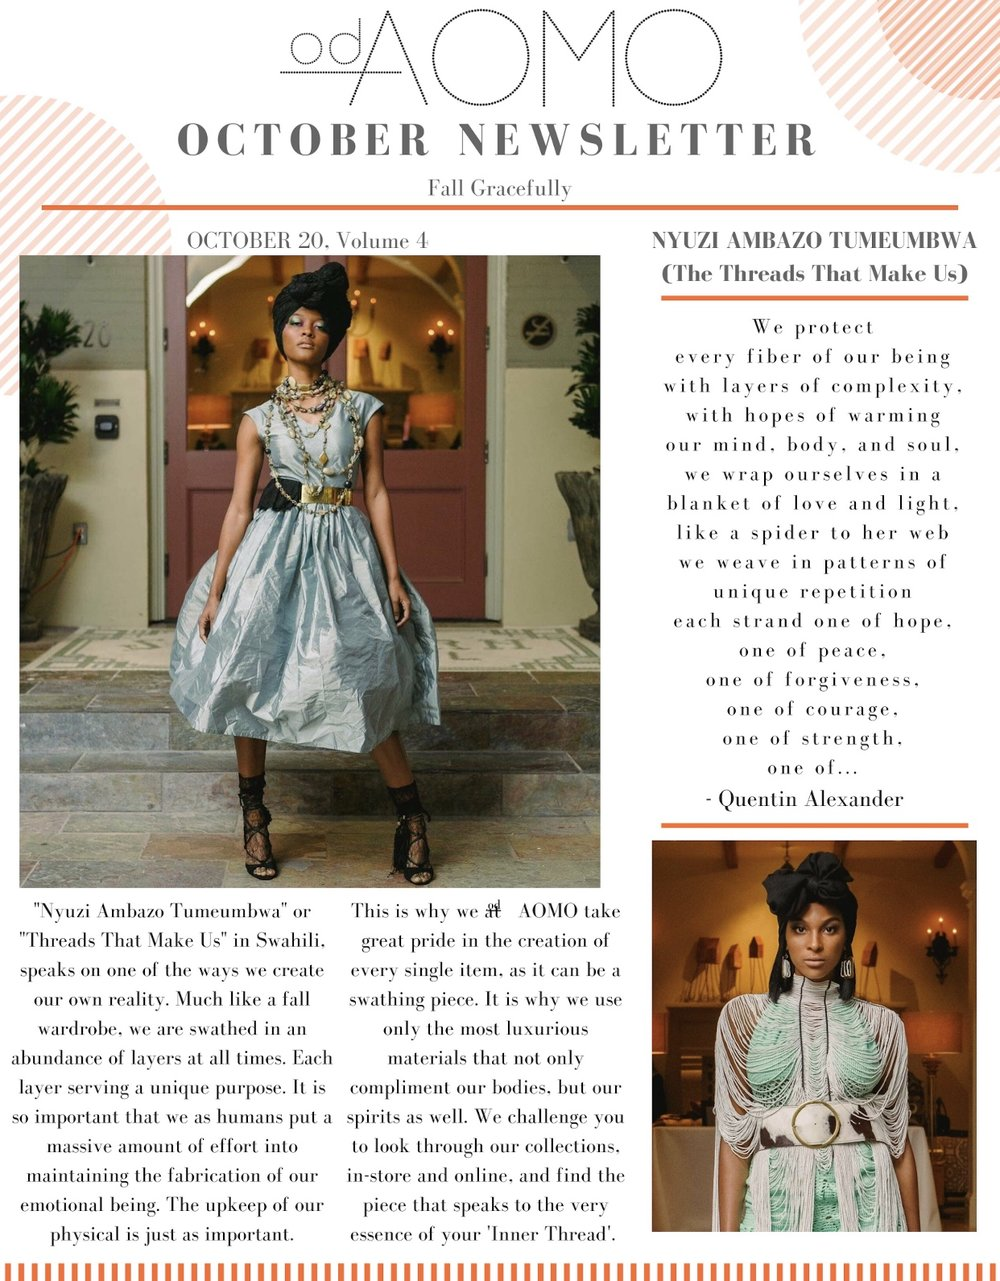 OCTOBER NEWSLETTER.jpeg